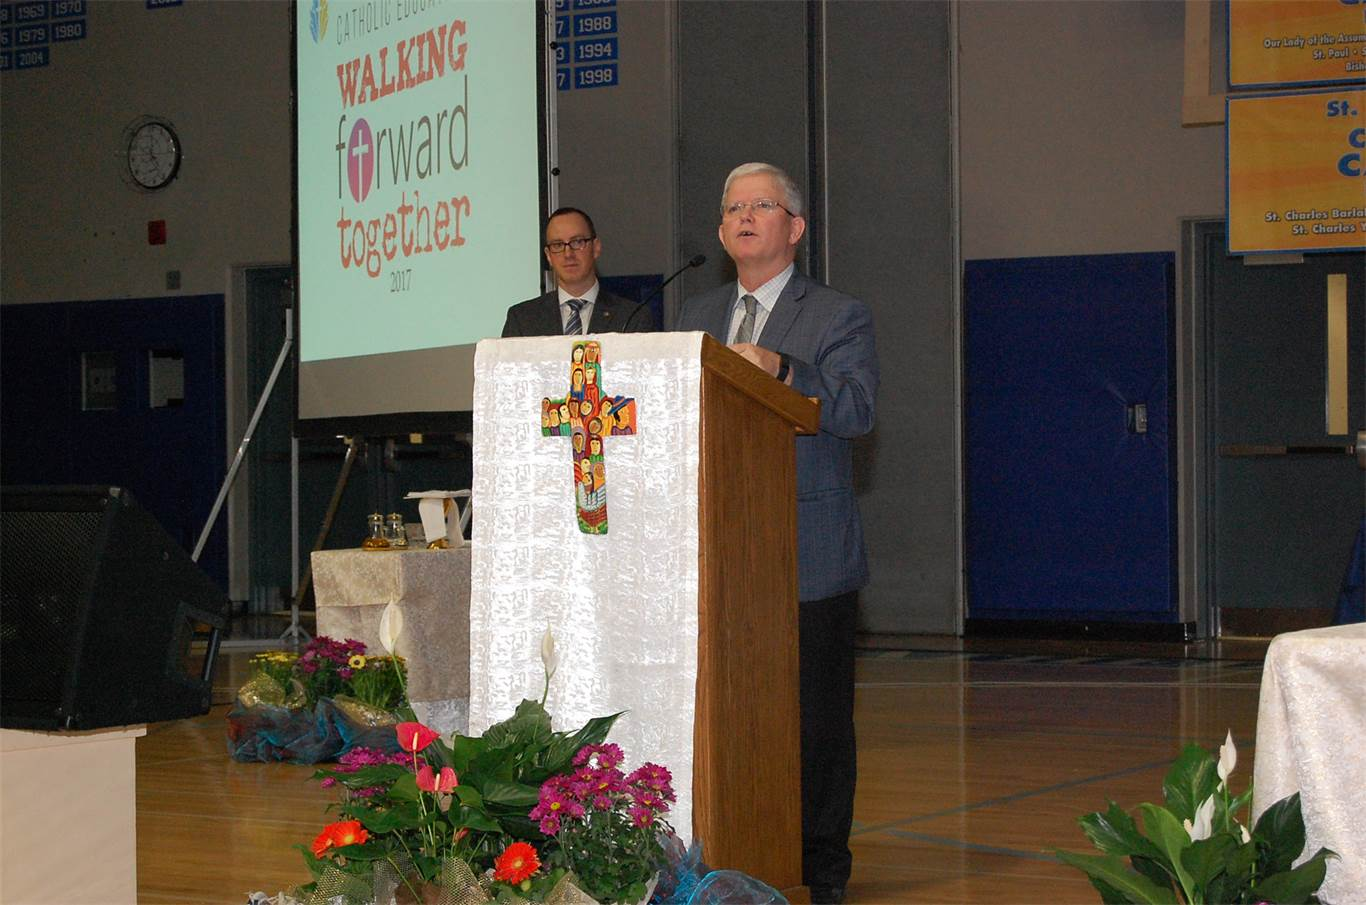 Welcoming students and staff to the Catholic Education Week opening mass on May 1st, Chairperson Patrick Daly said